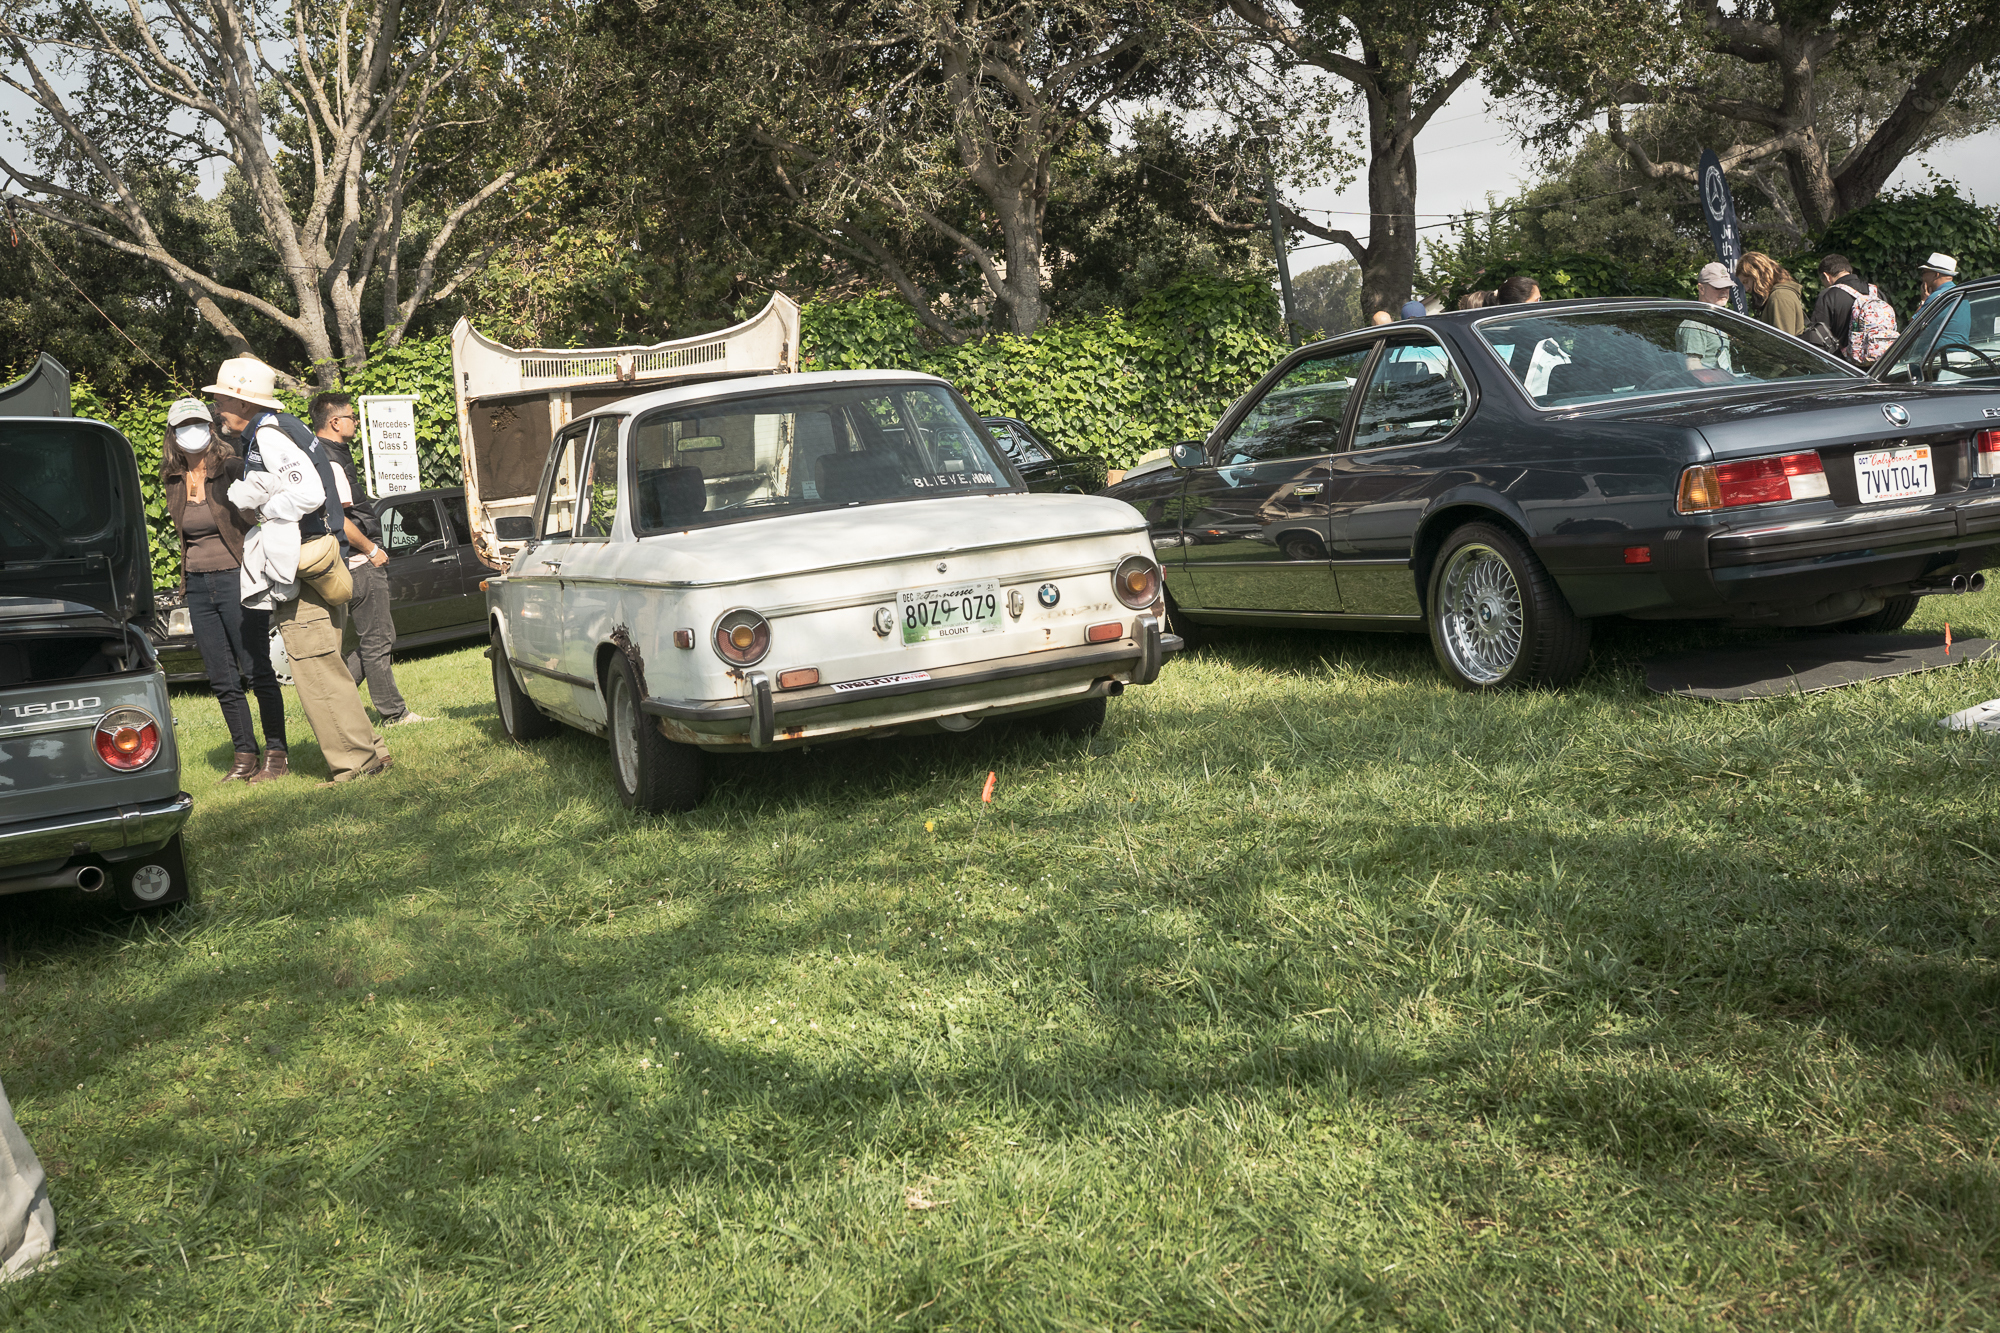 BMW 2002 parked on lawn